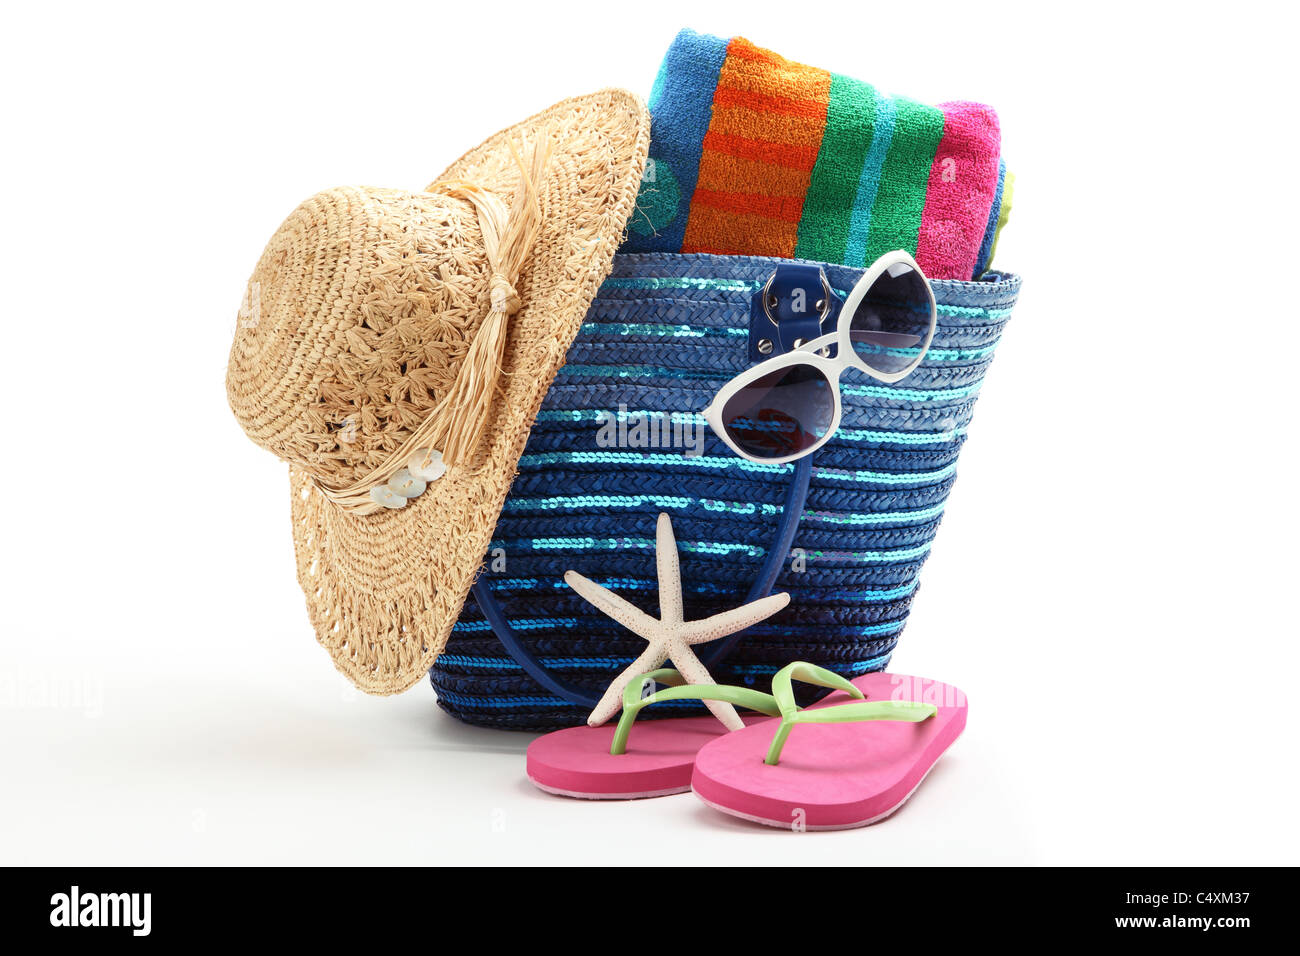 Beach bag with straw hat,towel,flip flops and sunglasses.Isolated on white background. - Stock Image